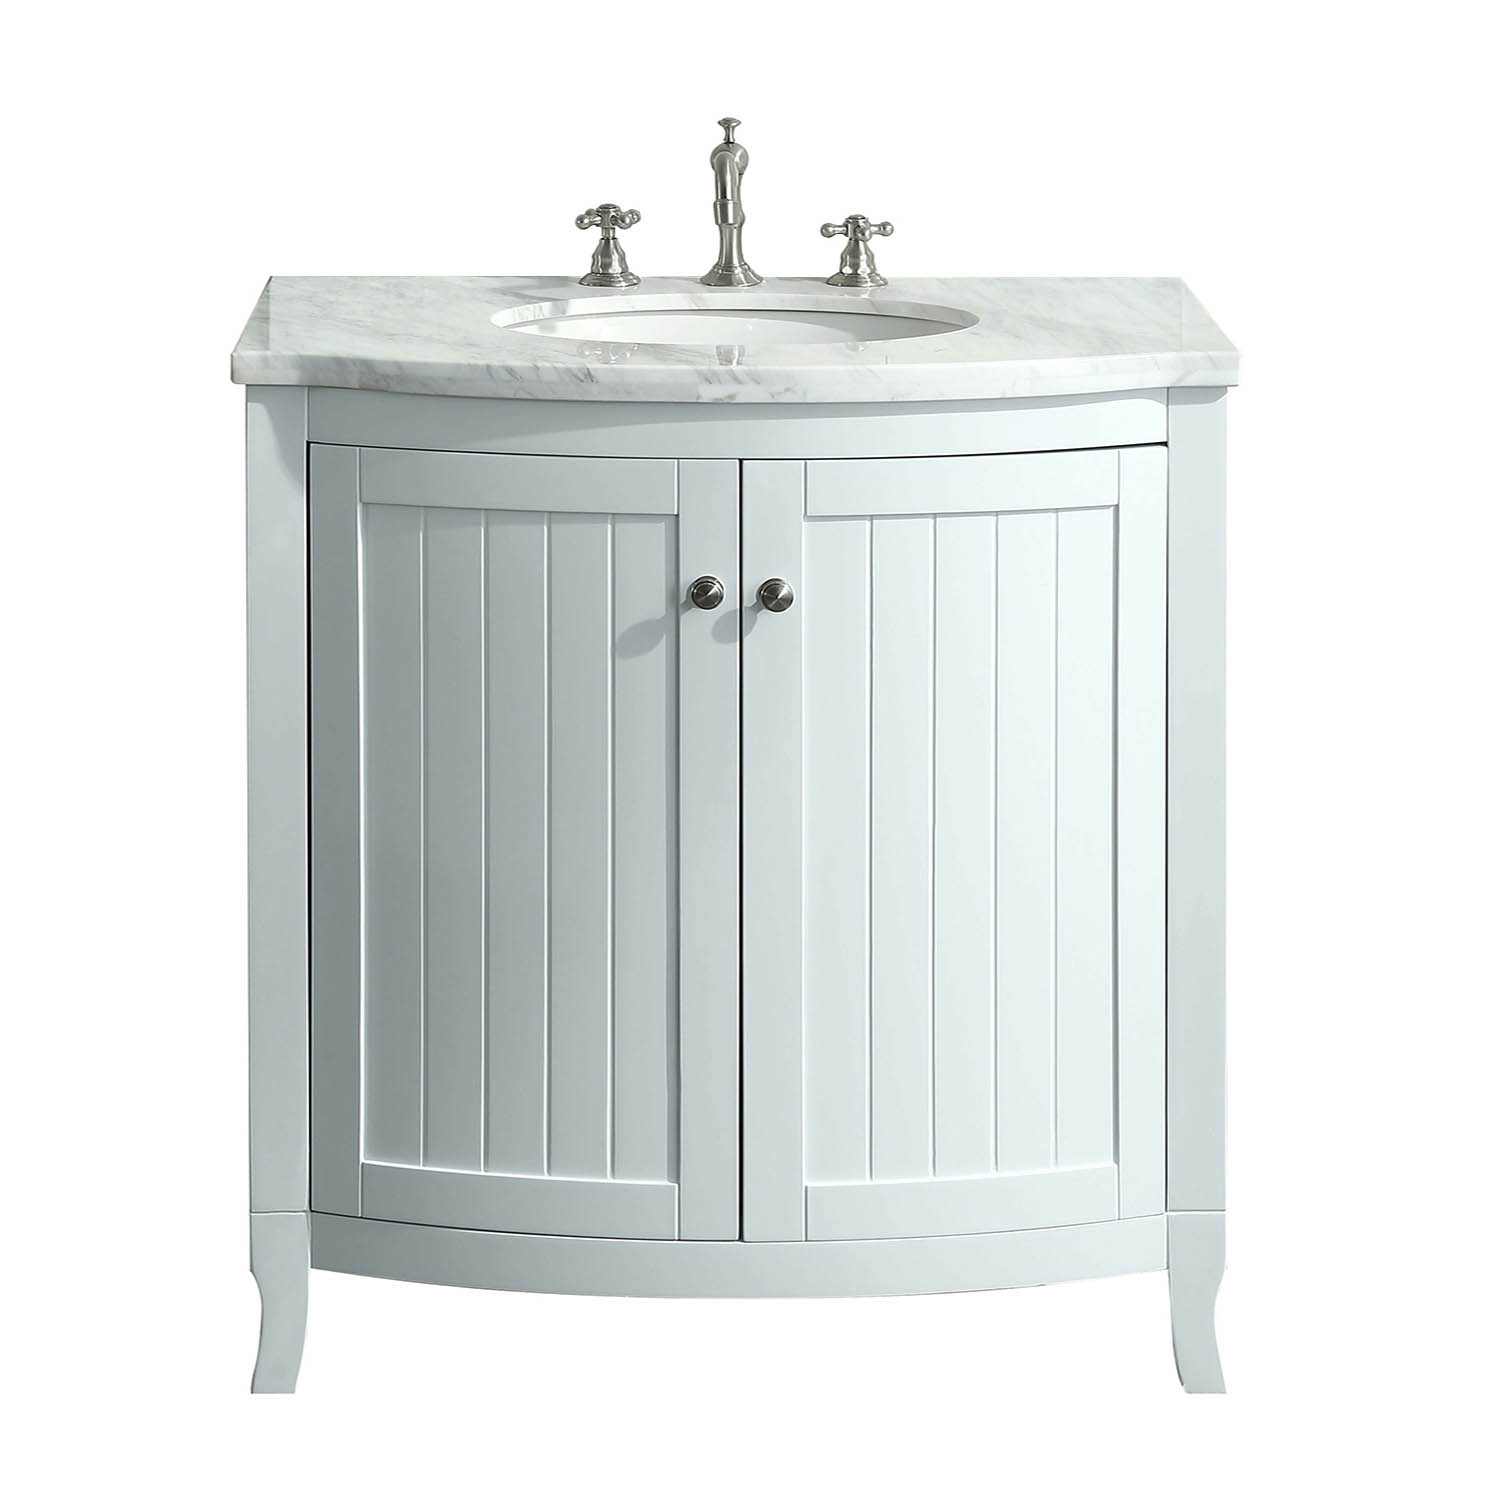 Eviva Odessa Zinx 30 White Bathroom Vanity With White Carrera Marble